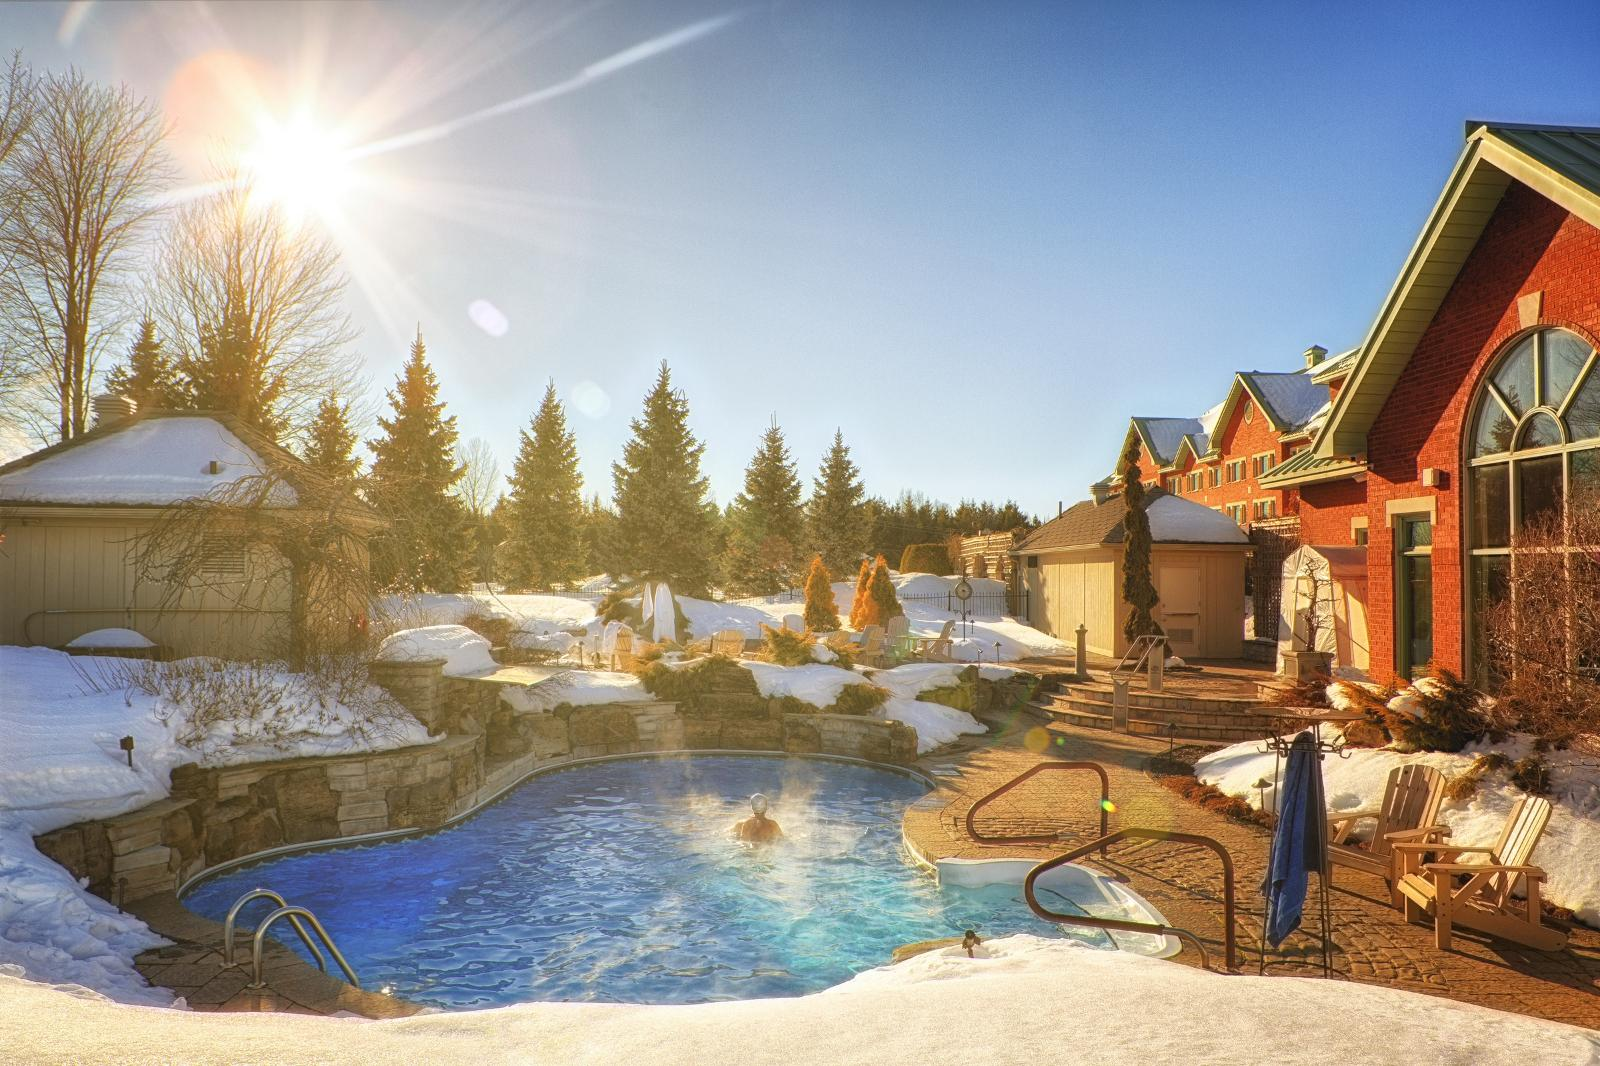 Auberge Godefroy - Snowmobile